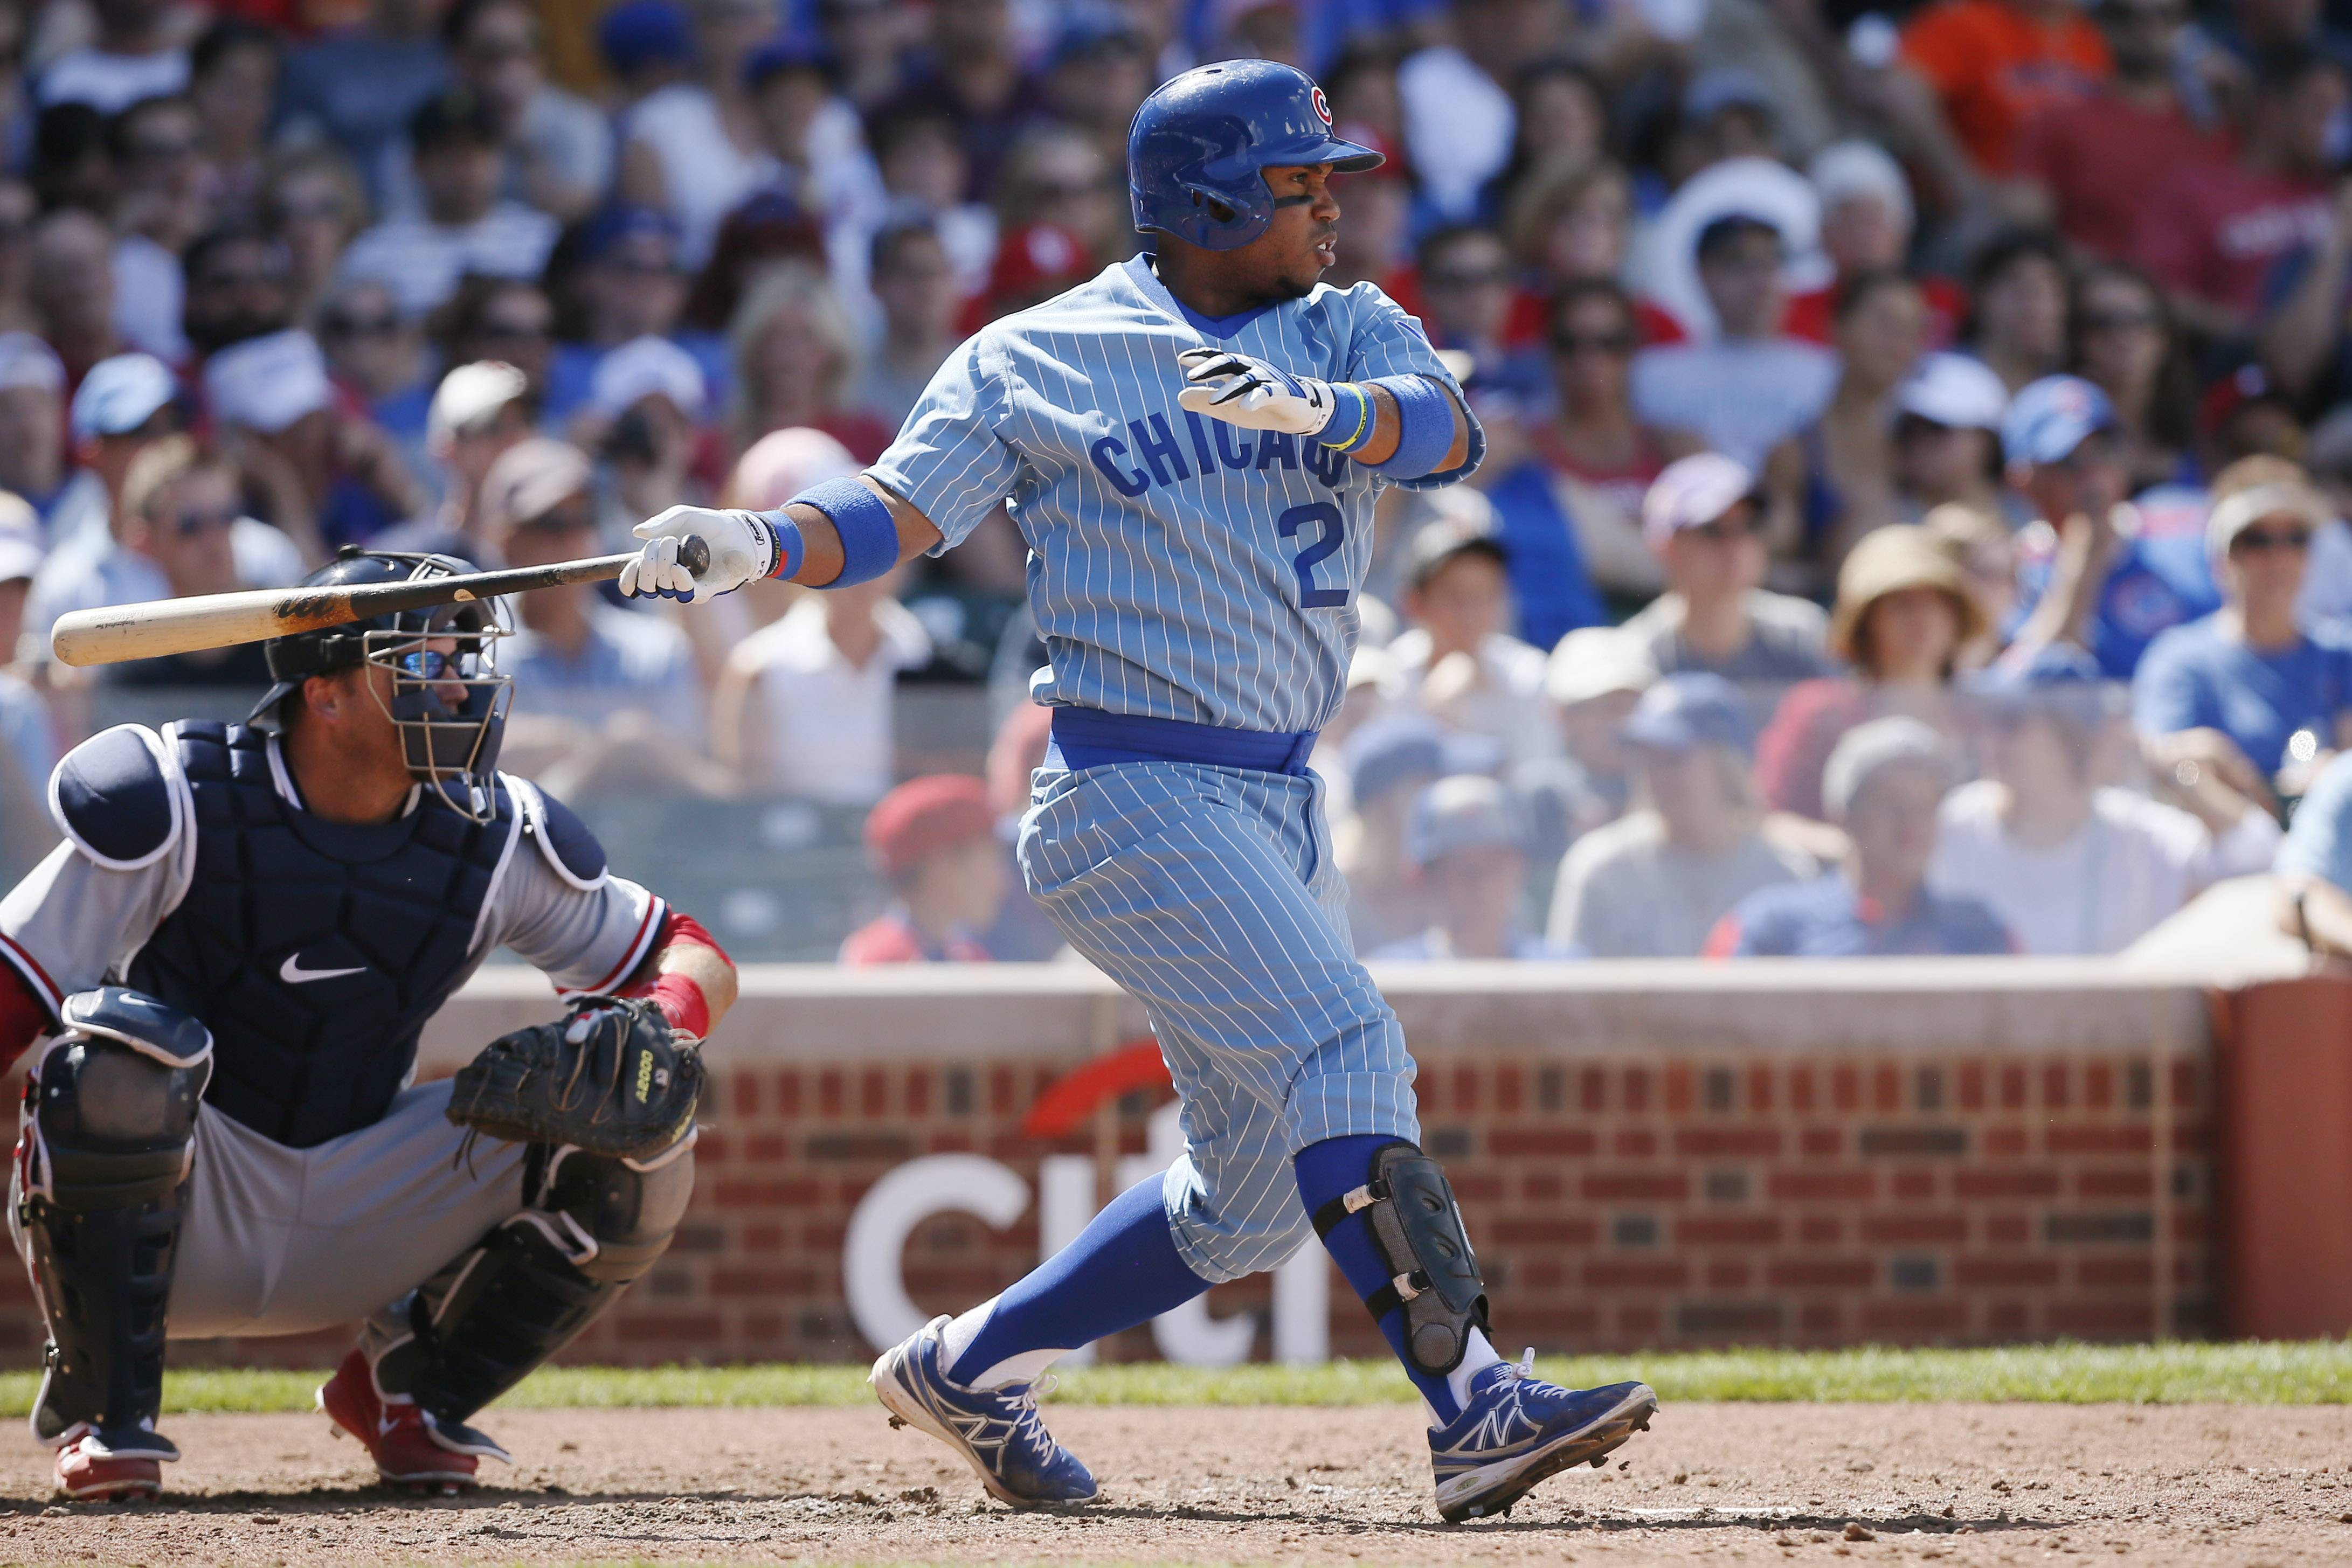 Chicago Cubs' Luis Valbuena, right, hits a single against the St. Louis Cardinals during the seventh inning of a baseball game on Sunday, July 27, 2014, in Chicago.